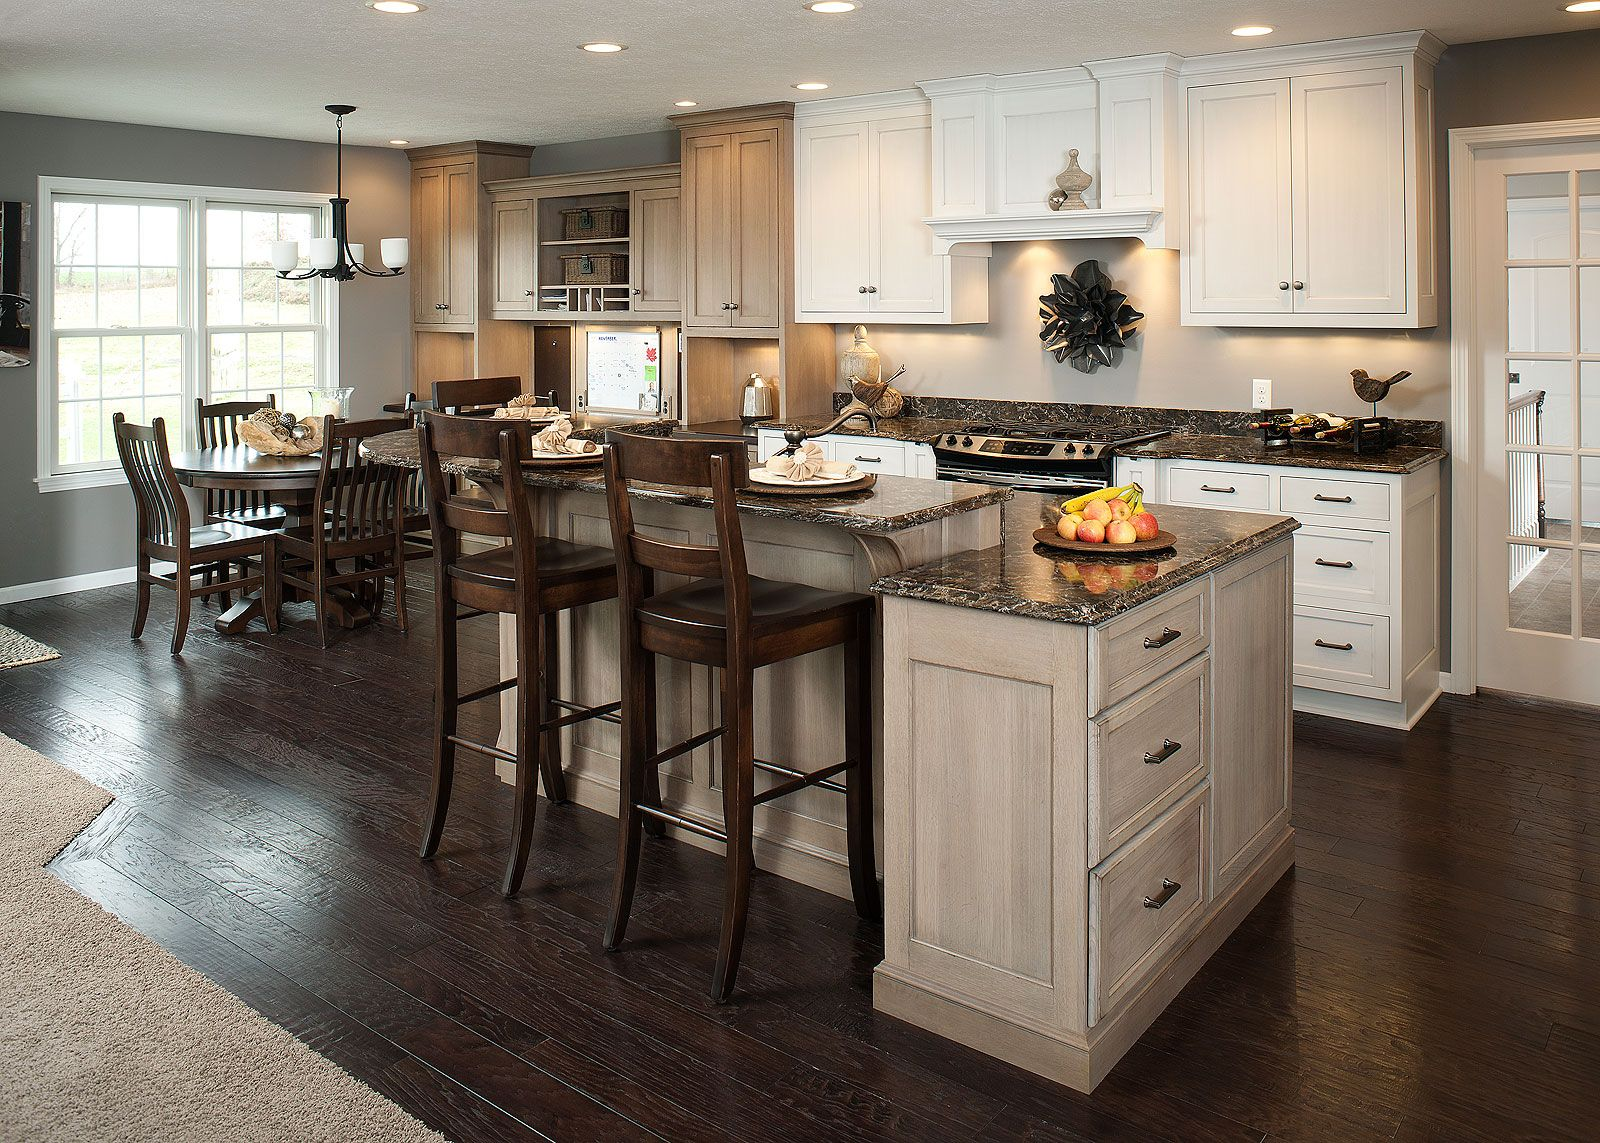 Kitchen Awesome Retro Modern Kitchen With Island Bar And